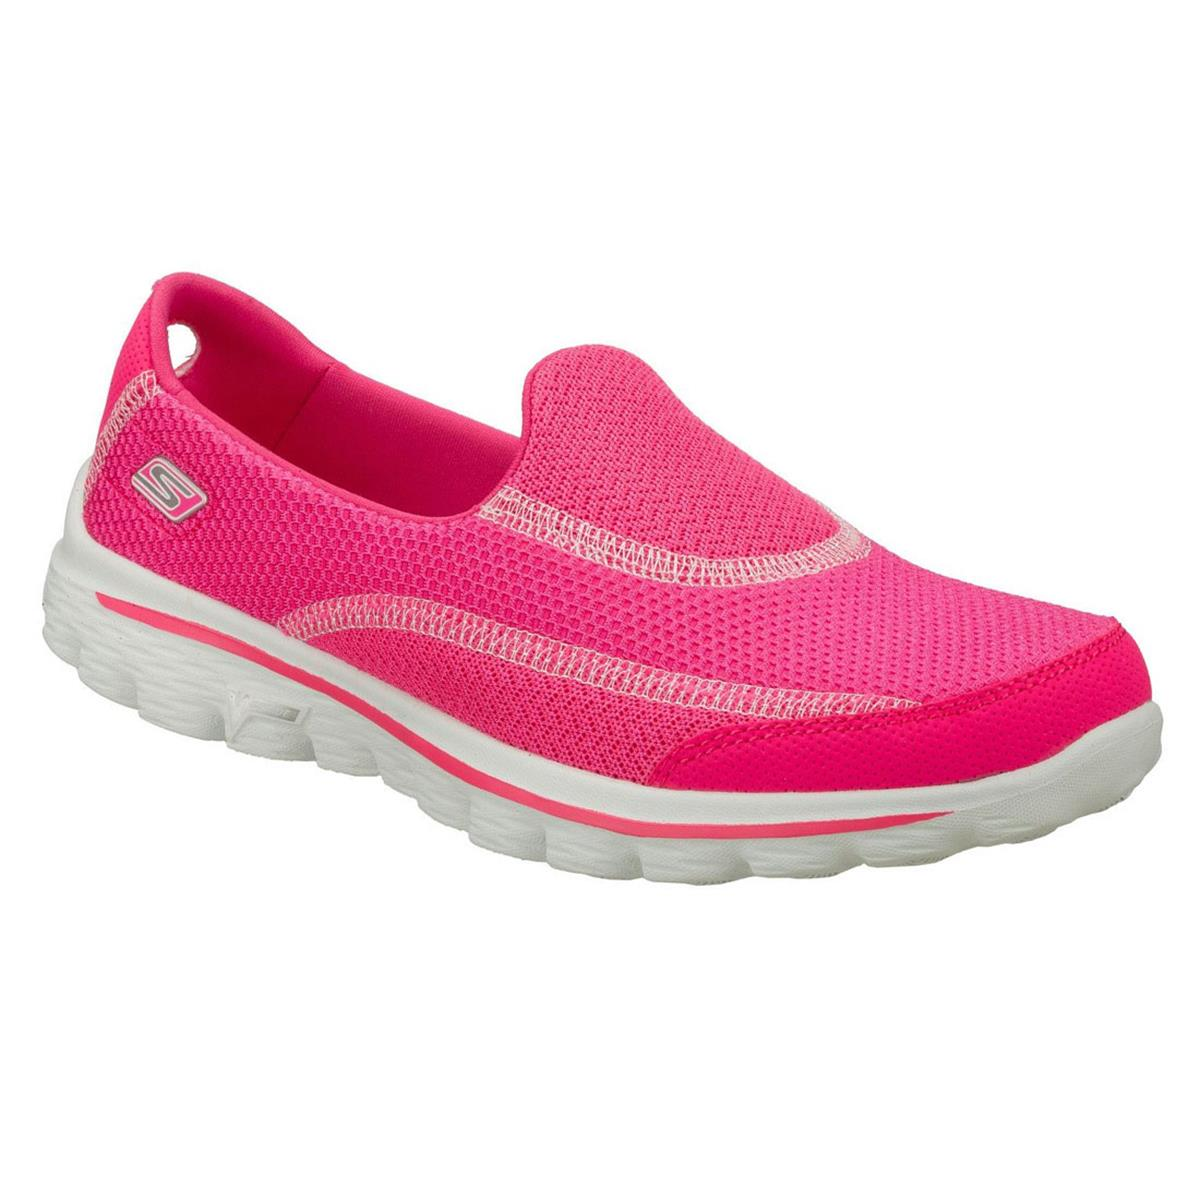 1205c45d6f98f Skechers Go Walk 2 Womens Shoes (Hot Pink) | directsportsEshop.co ...